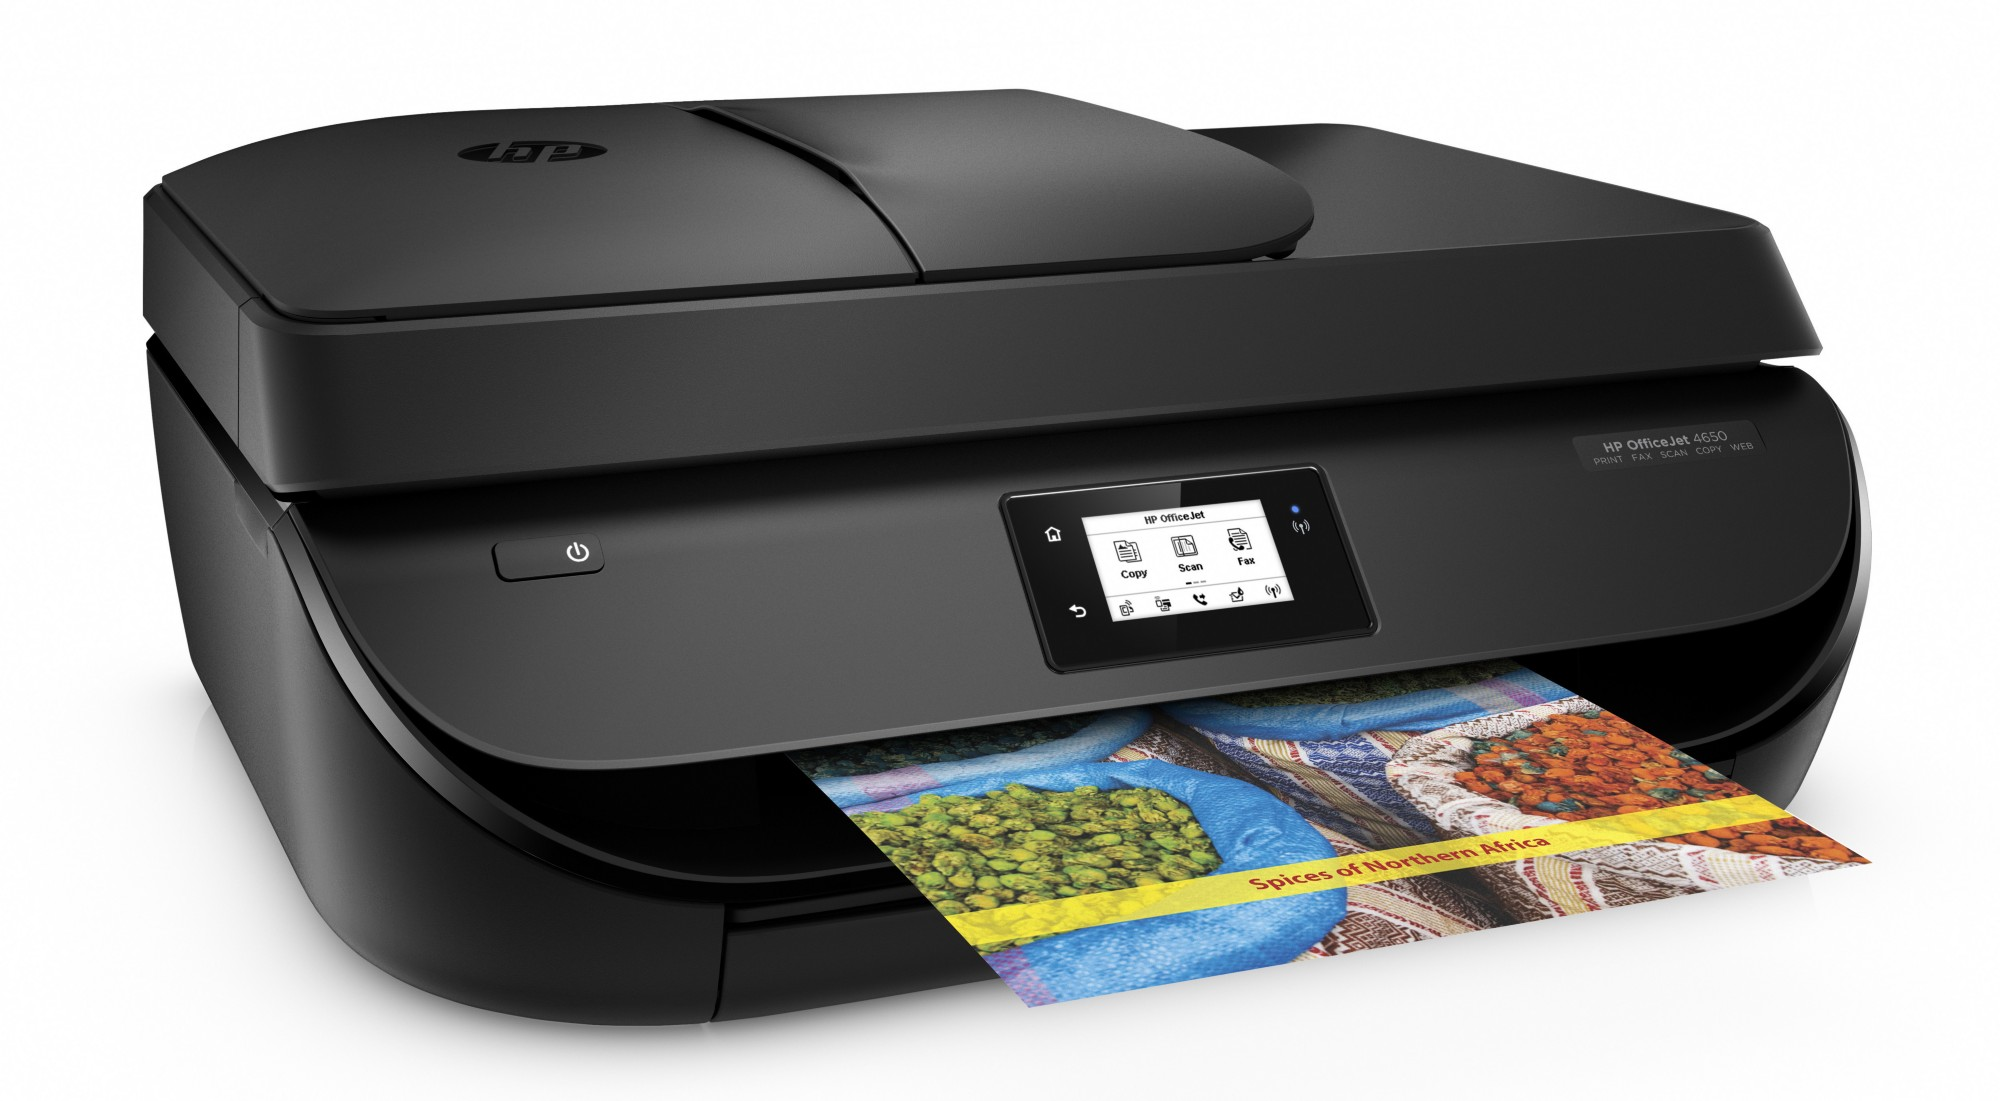 HP OFFICEJET 4655 WINDOWS XP DRIVER DOWNLOAD